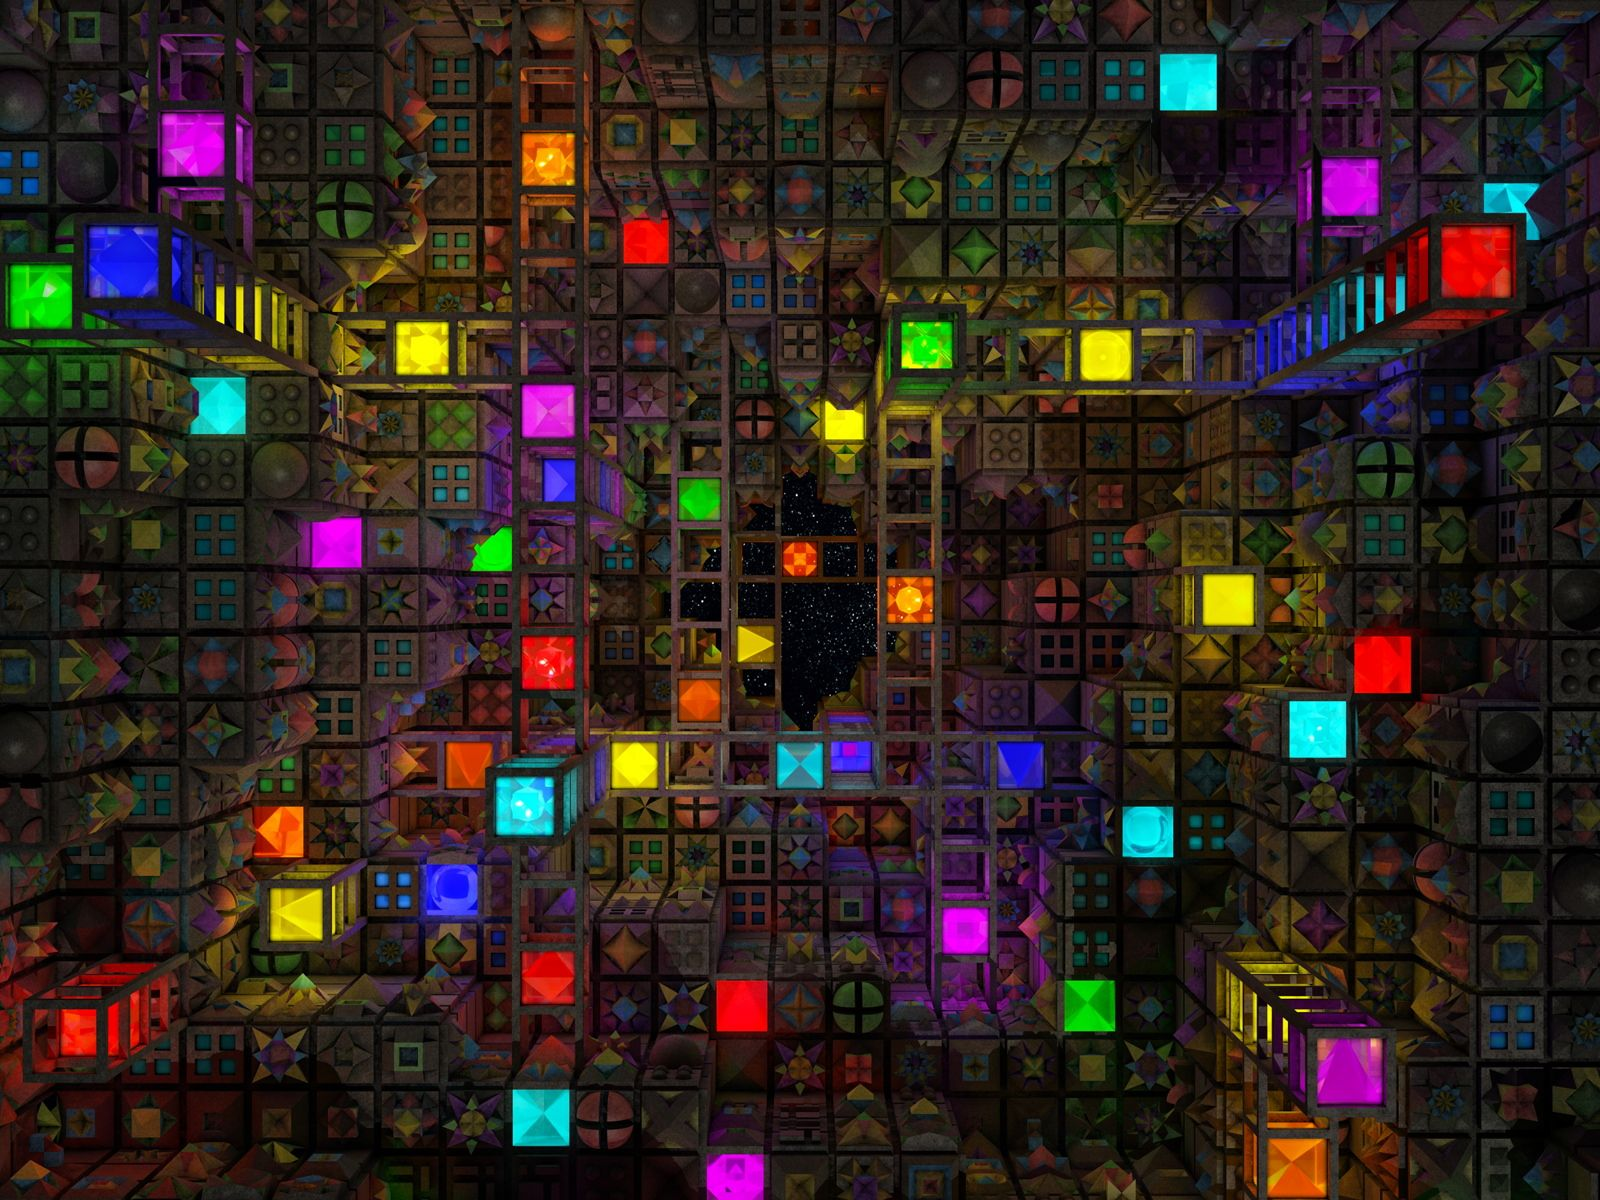 Image for Colorful 3D Cube Abstract Wallpaper Images